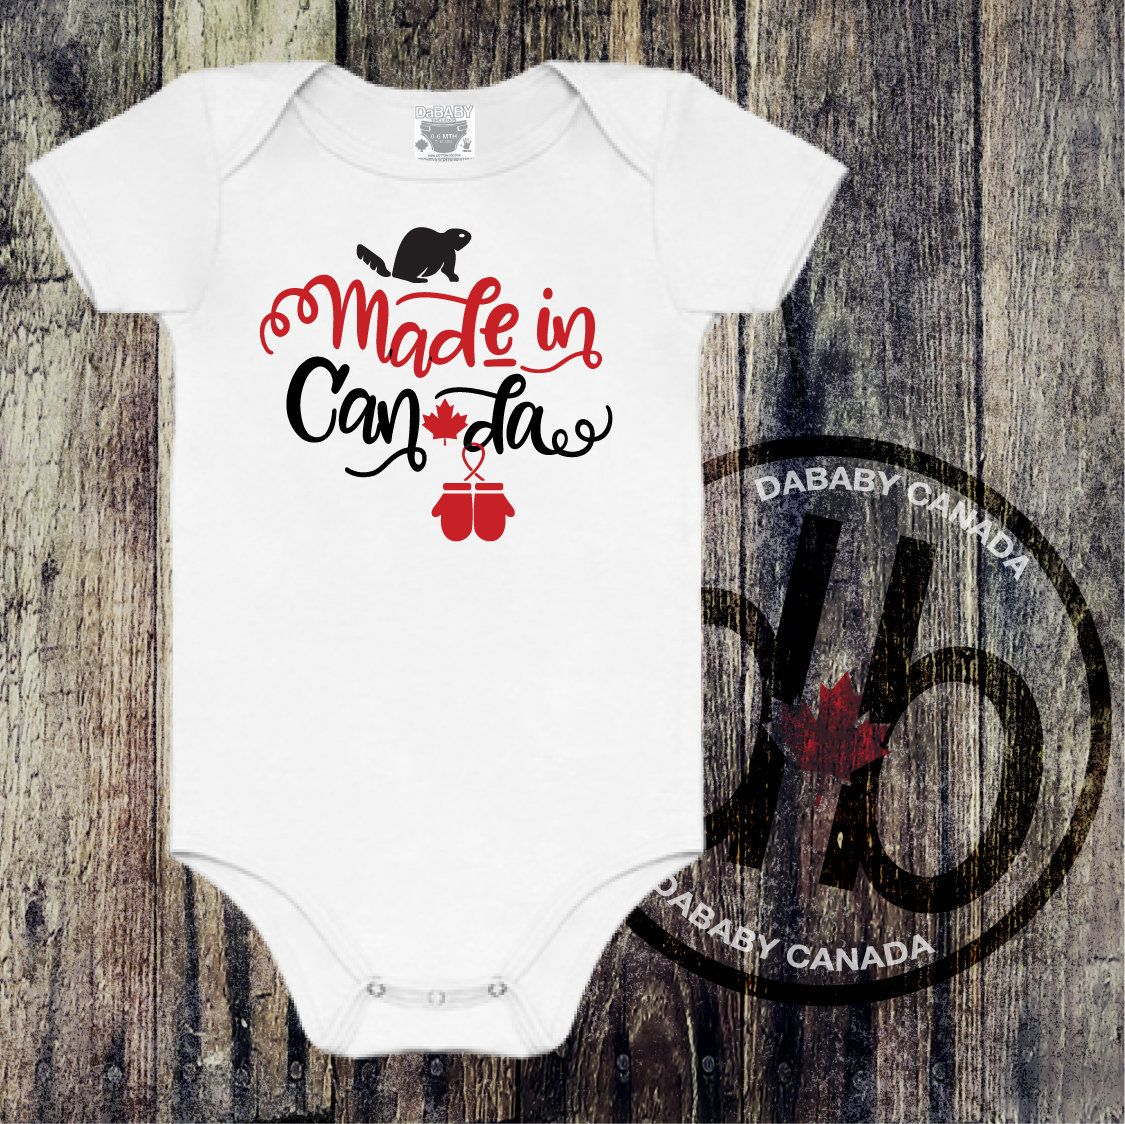 Made In Canada Bodysuit Toddler Canada Day T Shirt Family Canada Day Shirts Mens And Ladies Made In Canada Shirts Canada Day Tee With Images Canada Day Shirts